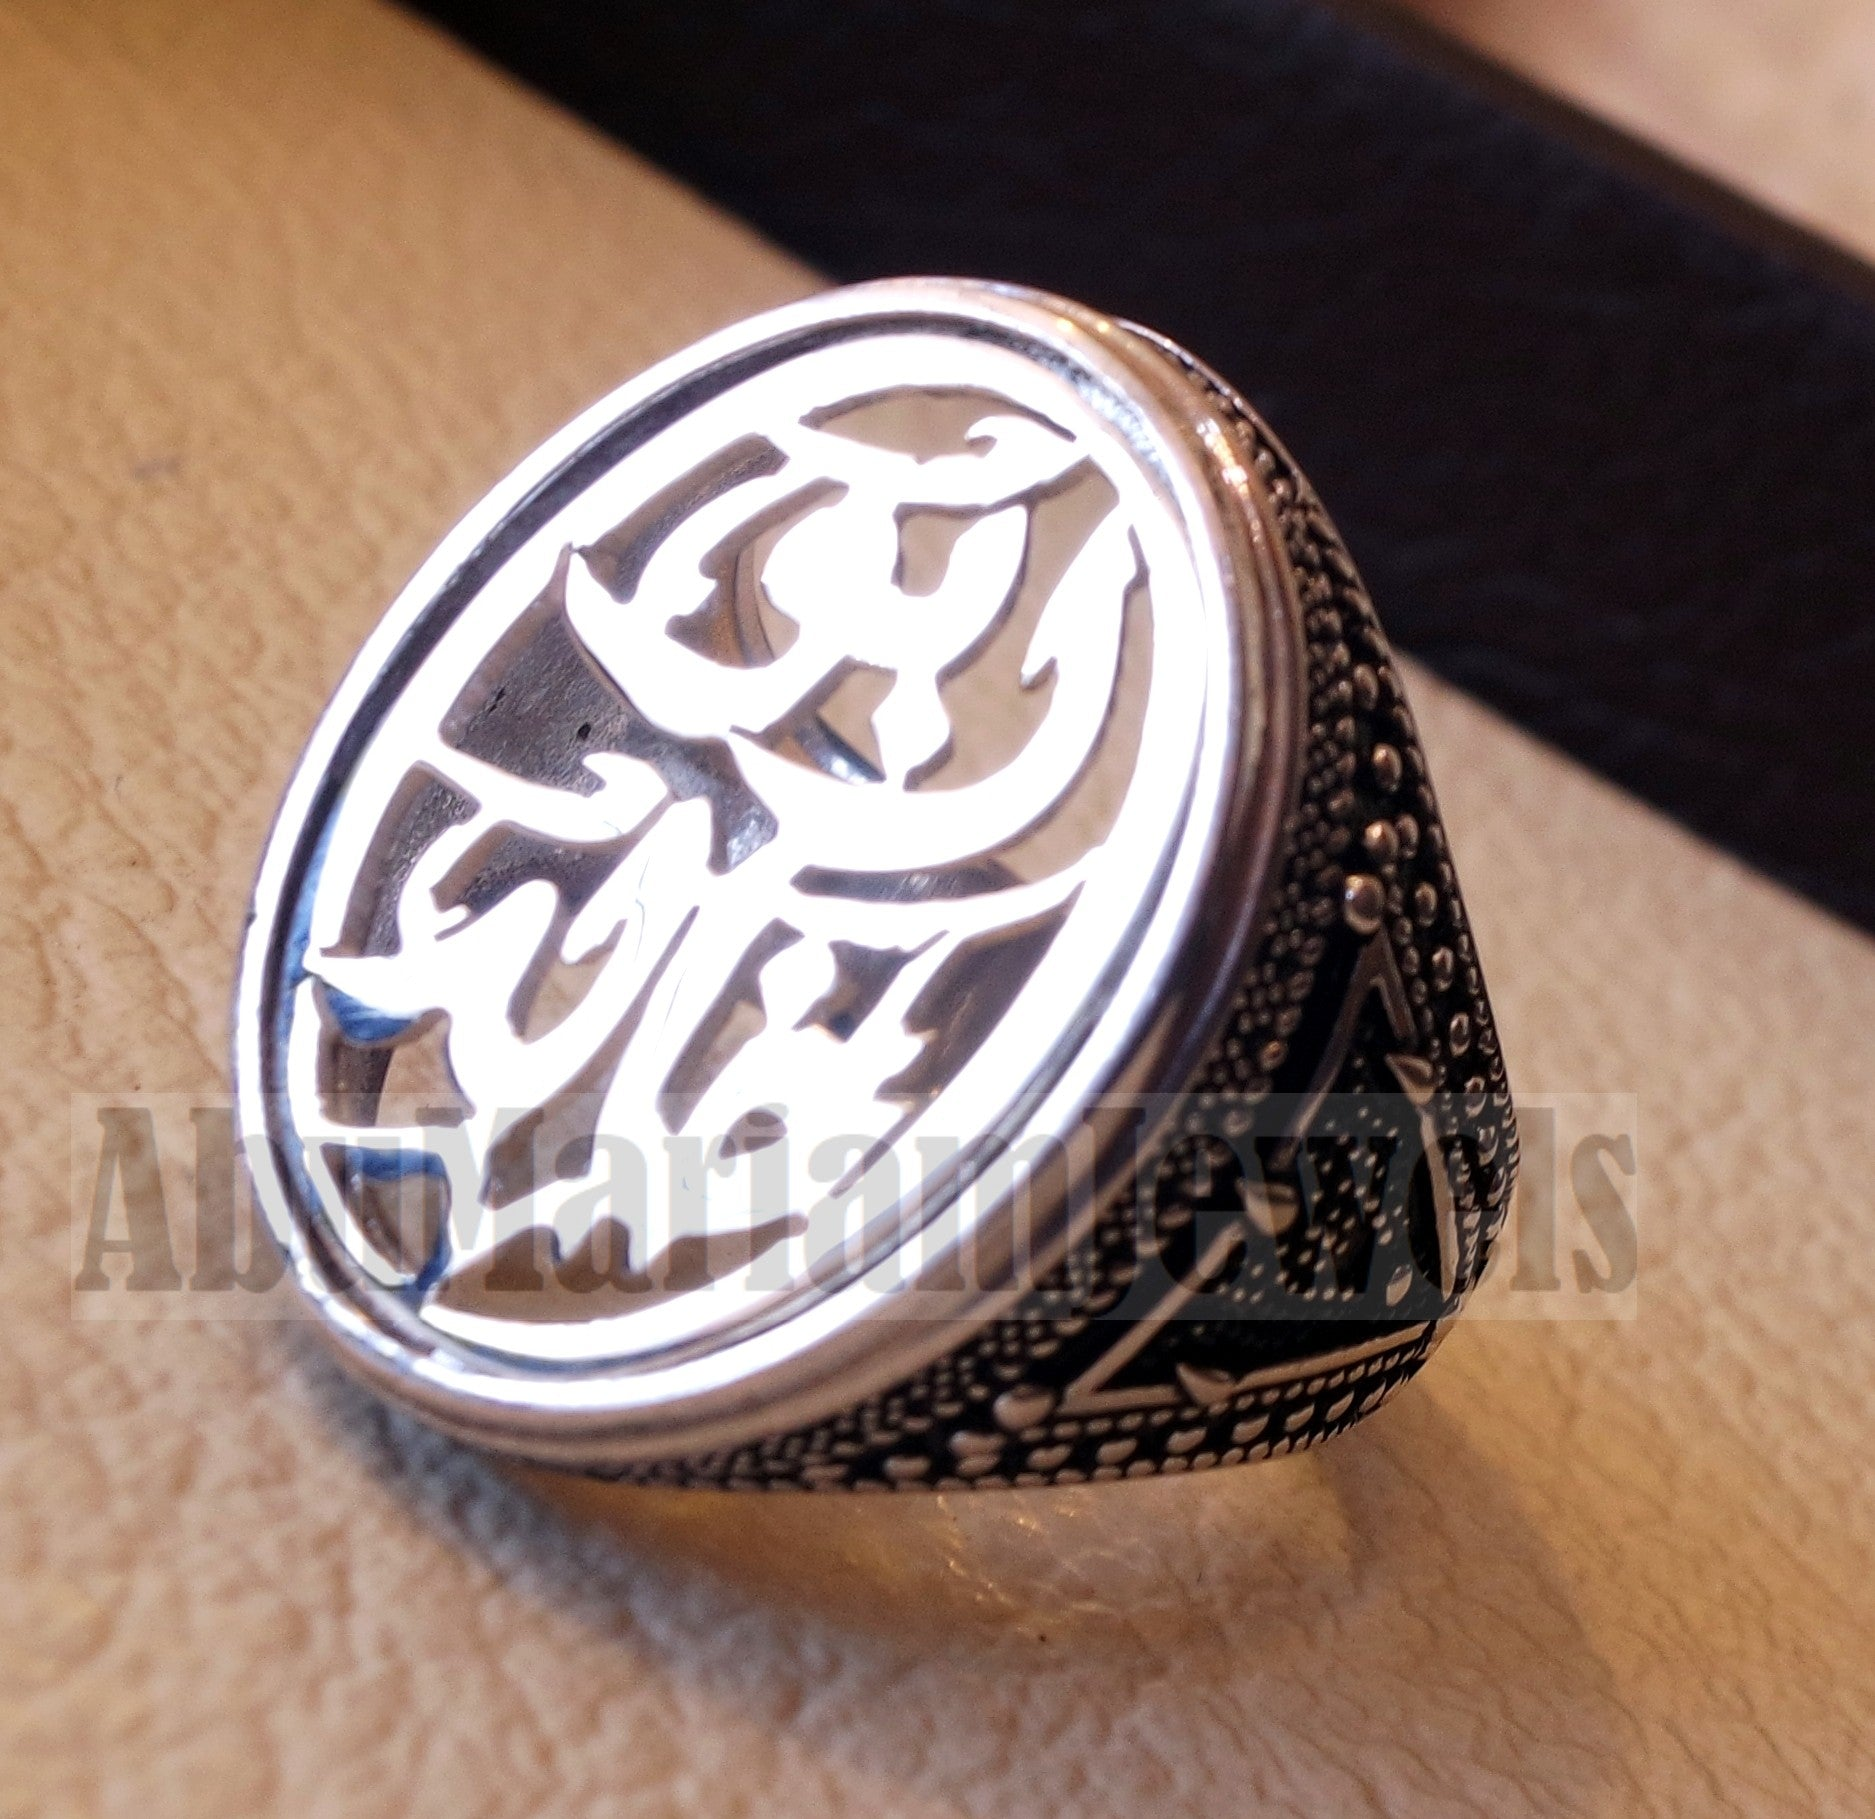 Customized Arabic calligraphy names ring personalized jewelry style sterling silver 925  any size TSN1004 خاتم اسم تفصيل